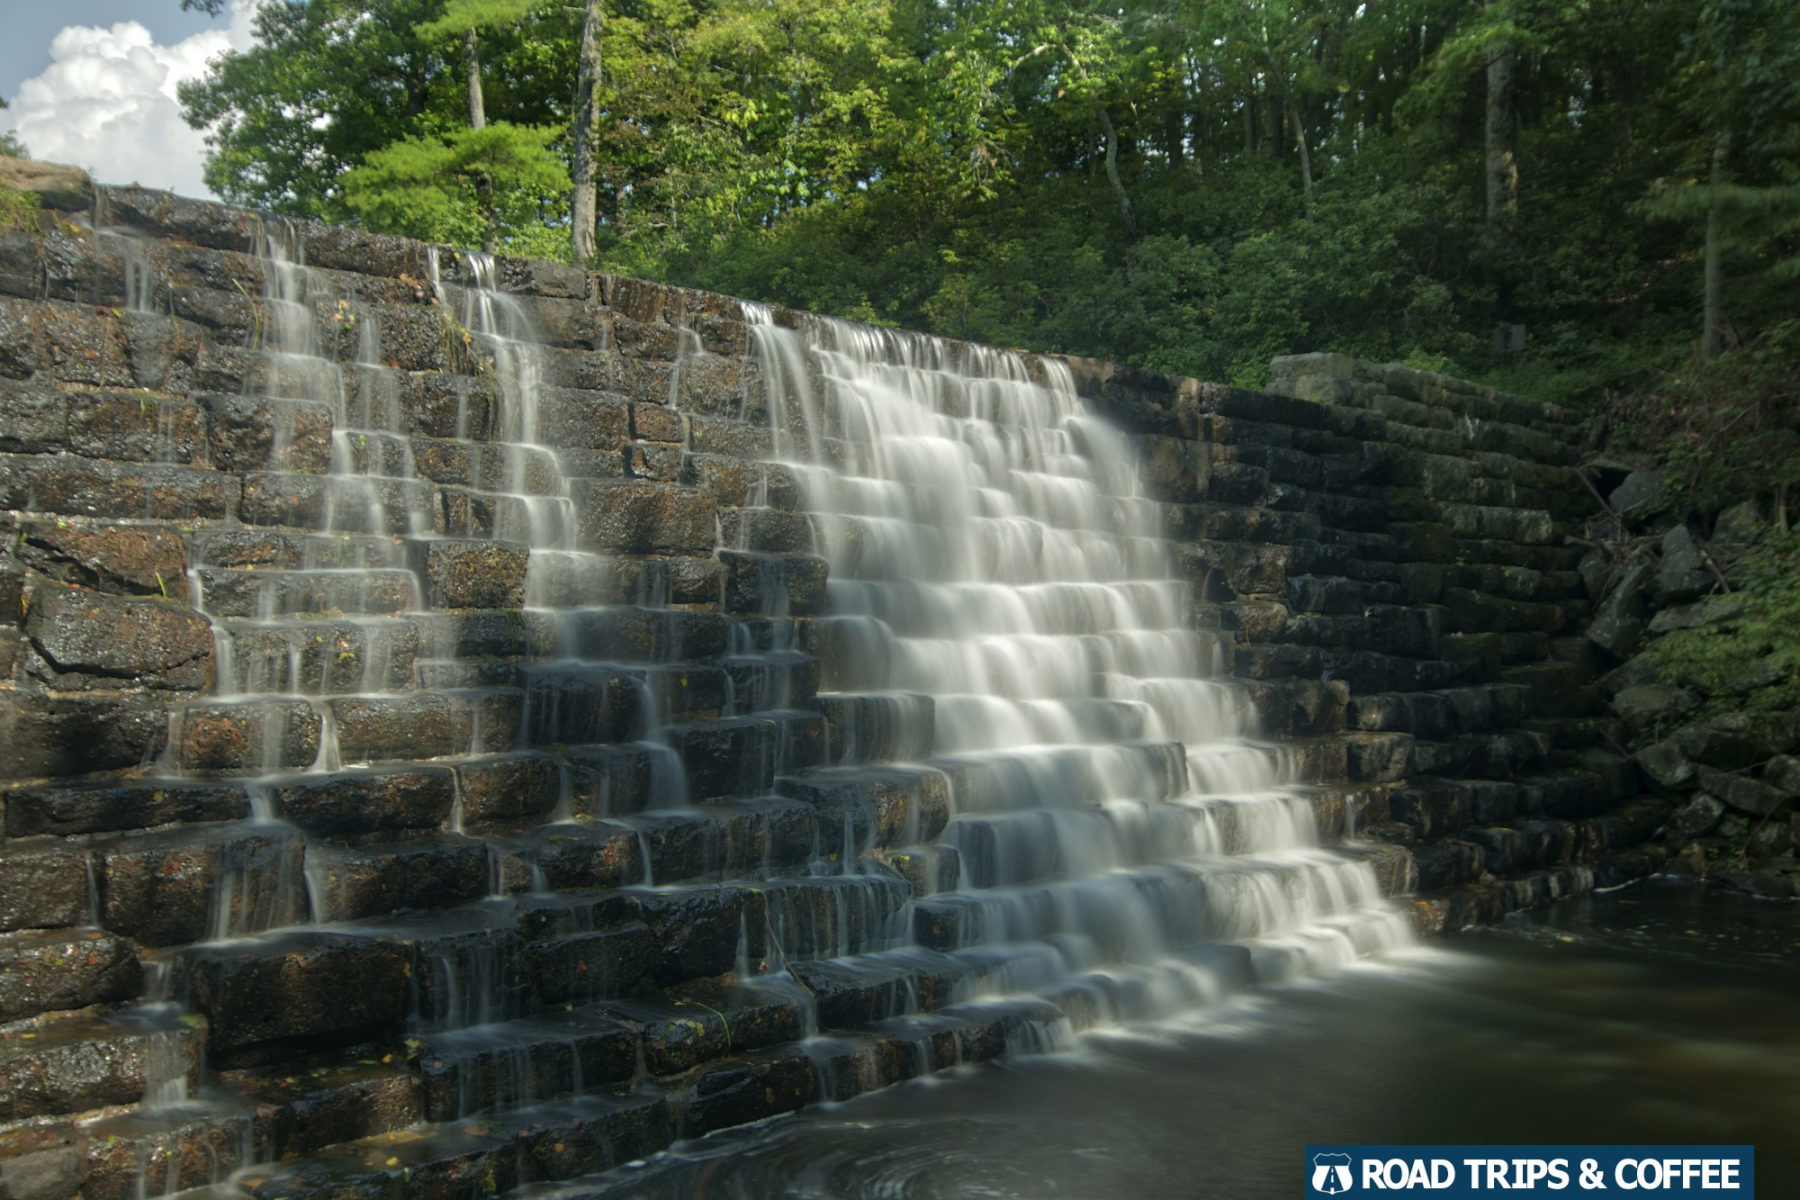 A waterfall spilling over the stone dam at Otter Lake on the Blue Ridge Parkway in Virginia